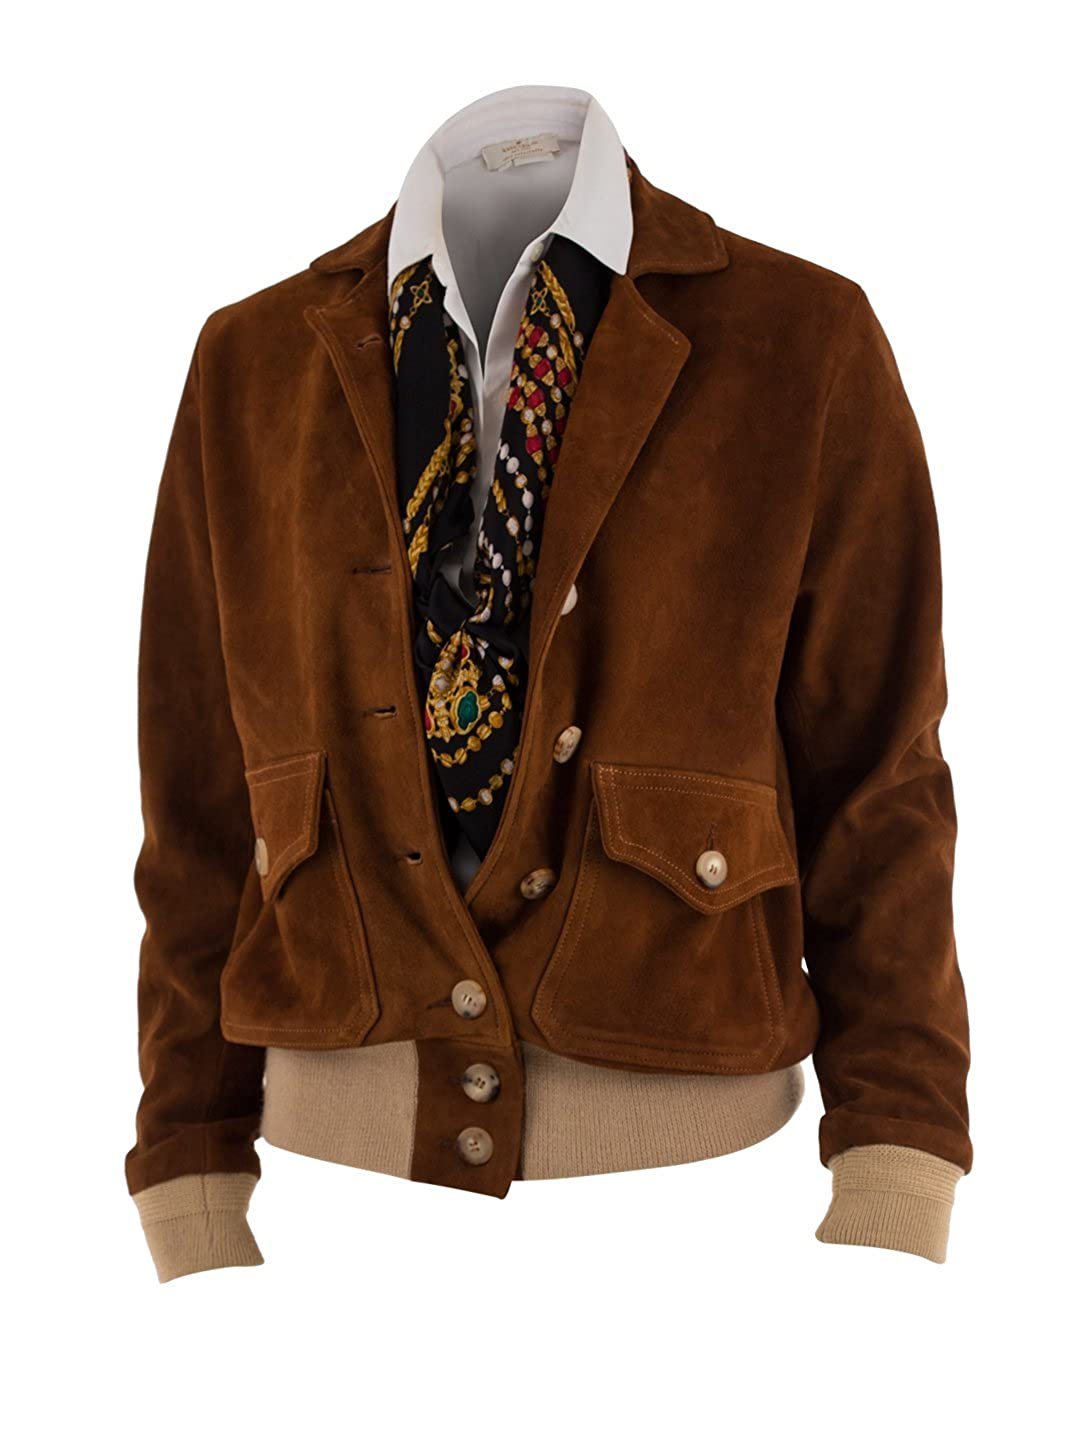 Vintage Coats & Jackets | Retro Coats and Jackets Phoenix Project Womens Amelia Earhart Limited Edition Jacket $1,595.00 AT vintagedancer.com